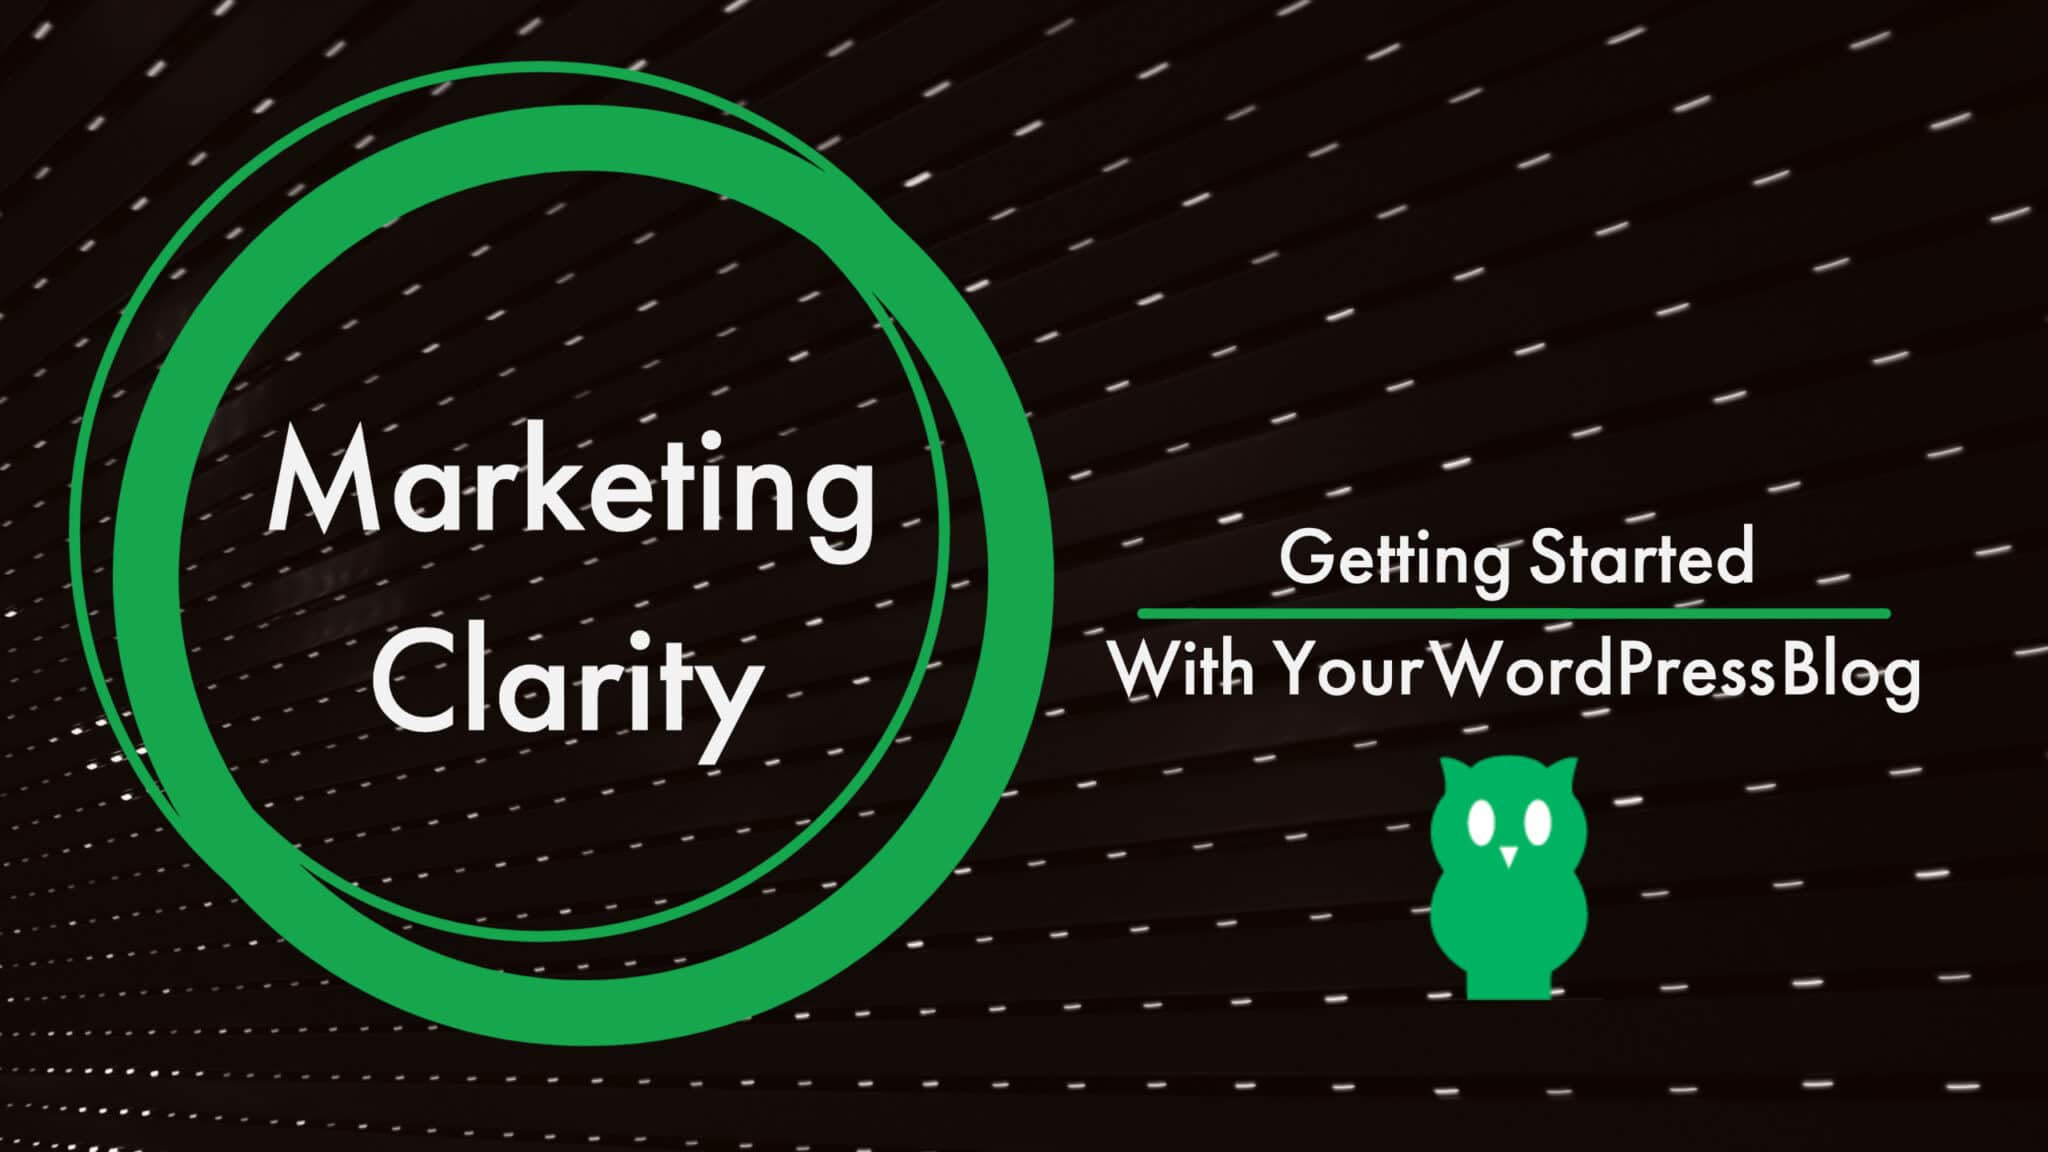 Getting Started With Your WordPress Blog with Marketing Clarity